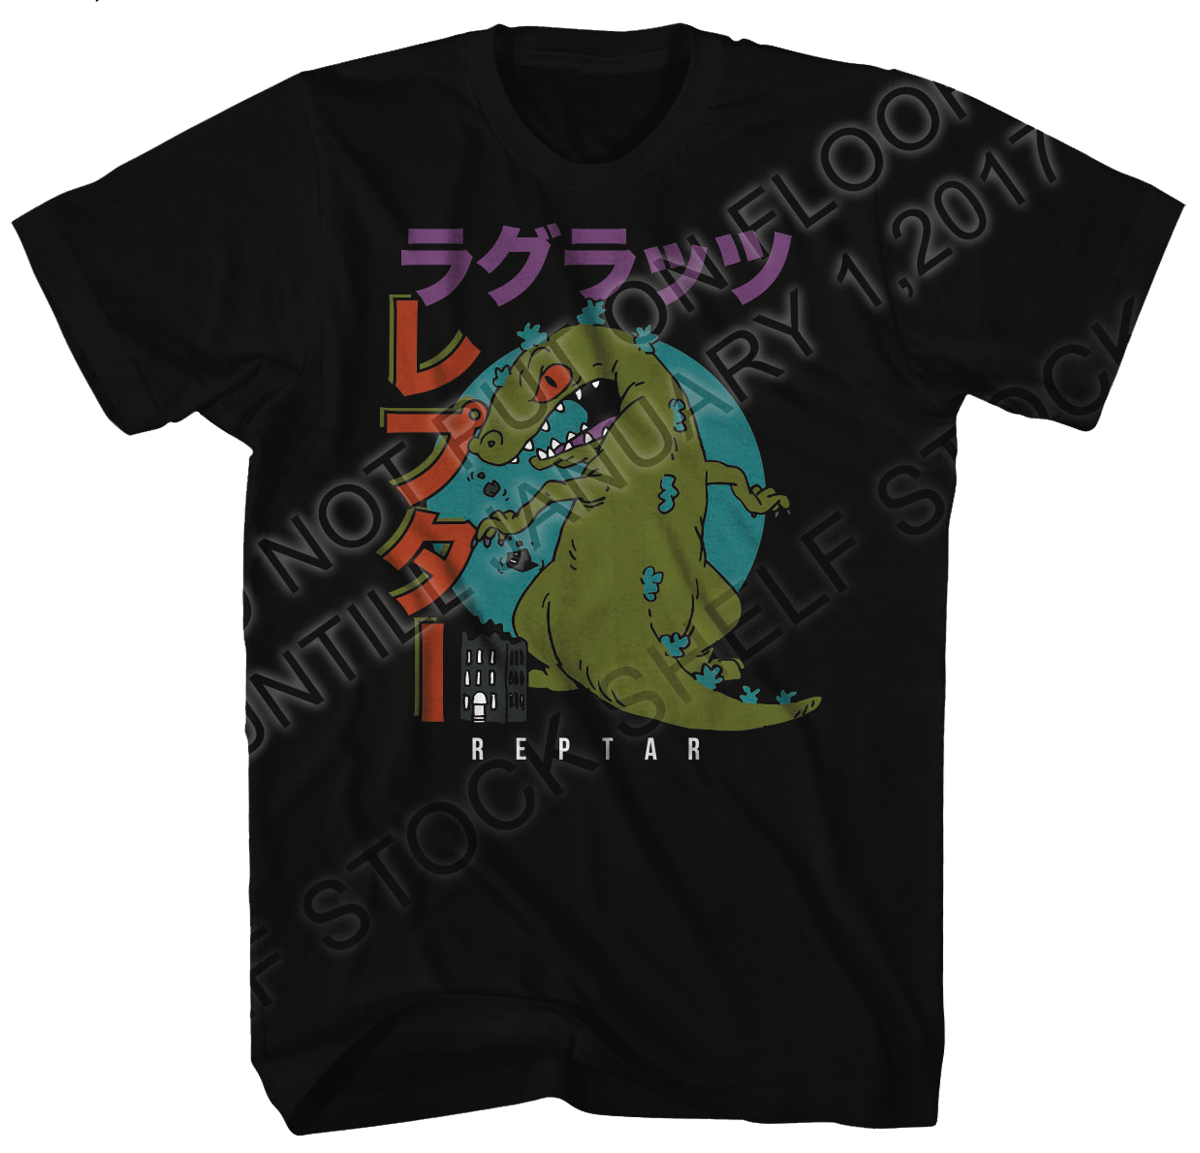 NICKELODEON RUGRATS FAMOUS REPTAR BLACK T/S LG